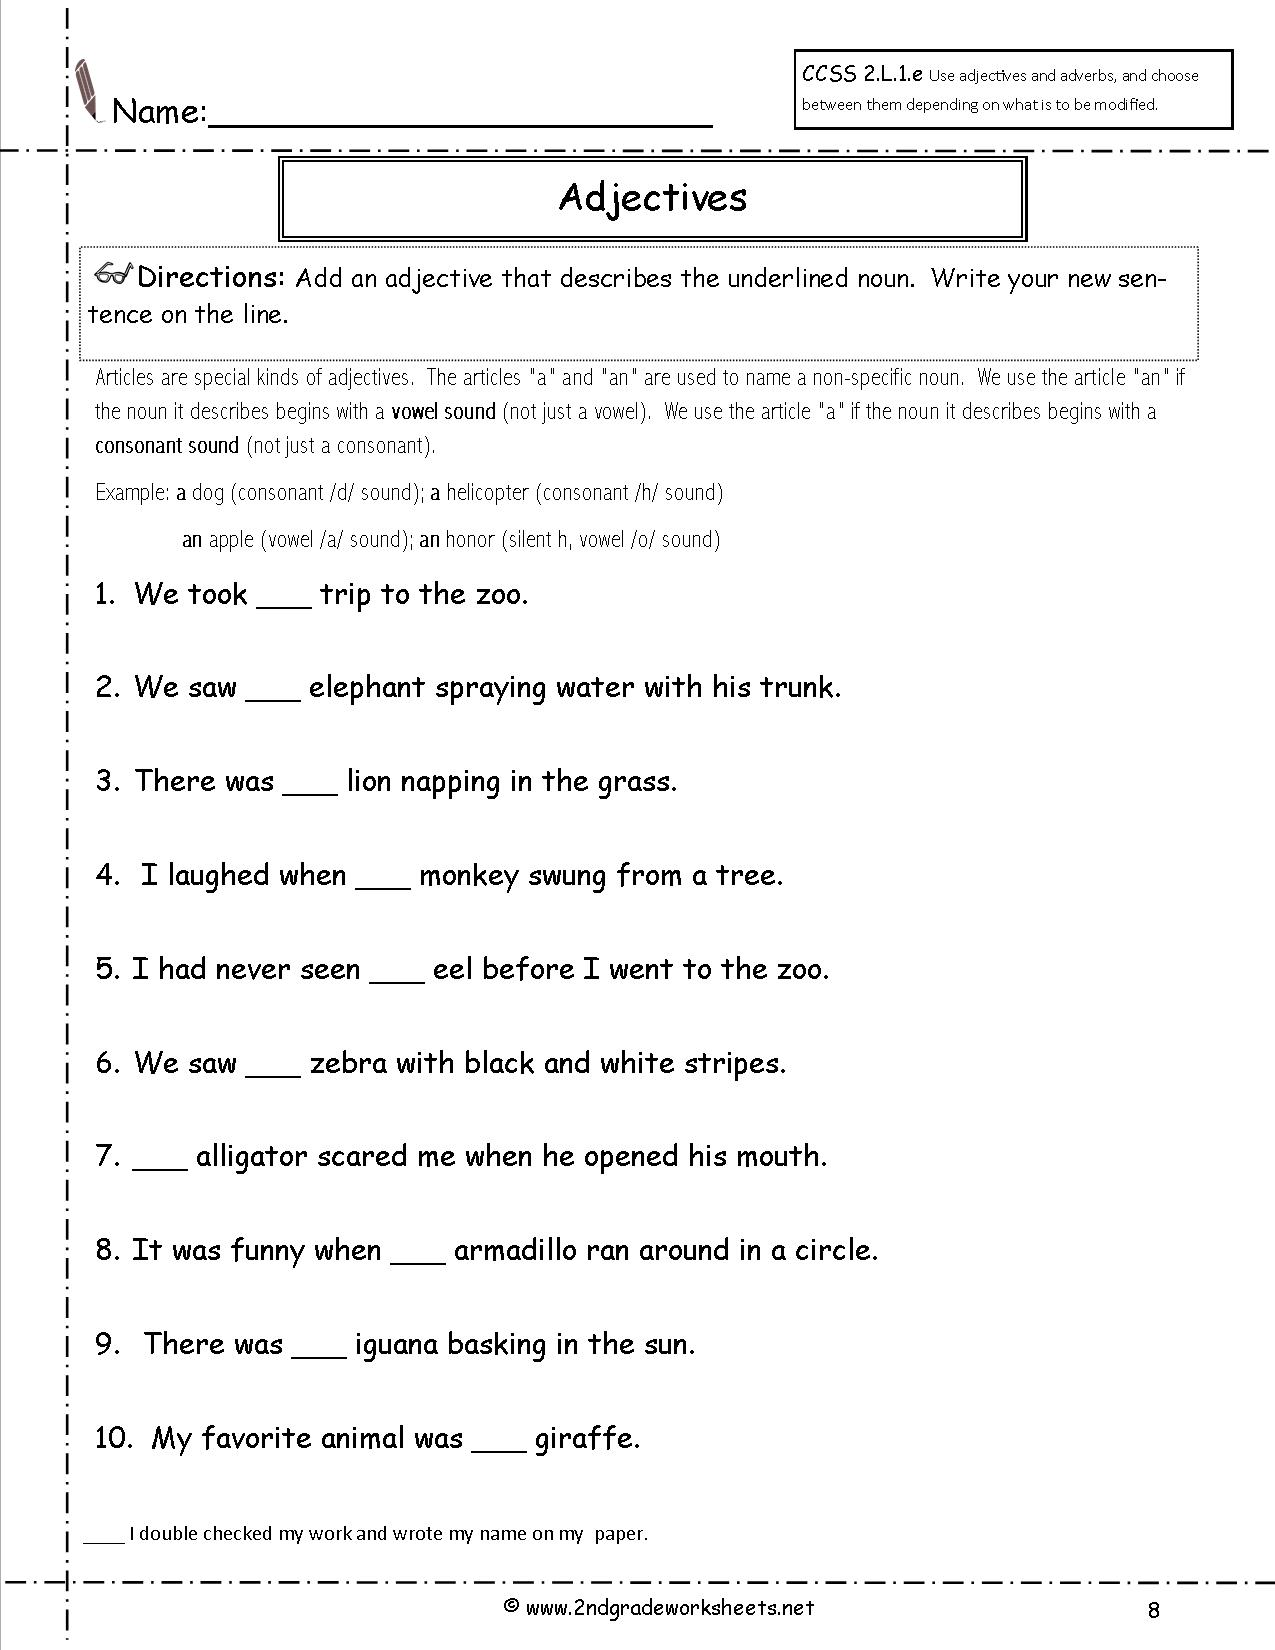 Worksheet Free Printable English Worksheets For Grade 5 free printable english grammar worksheets grade 7 for adjectives a or an worksheet